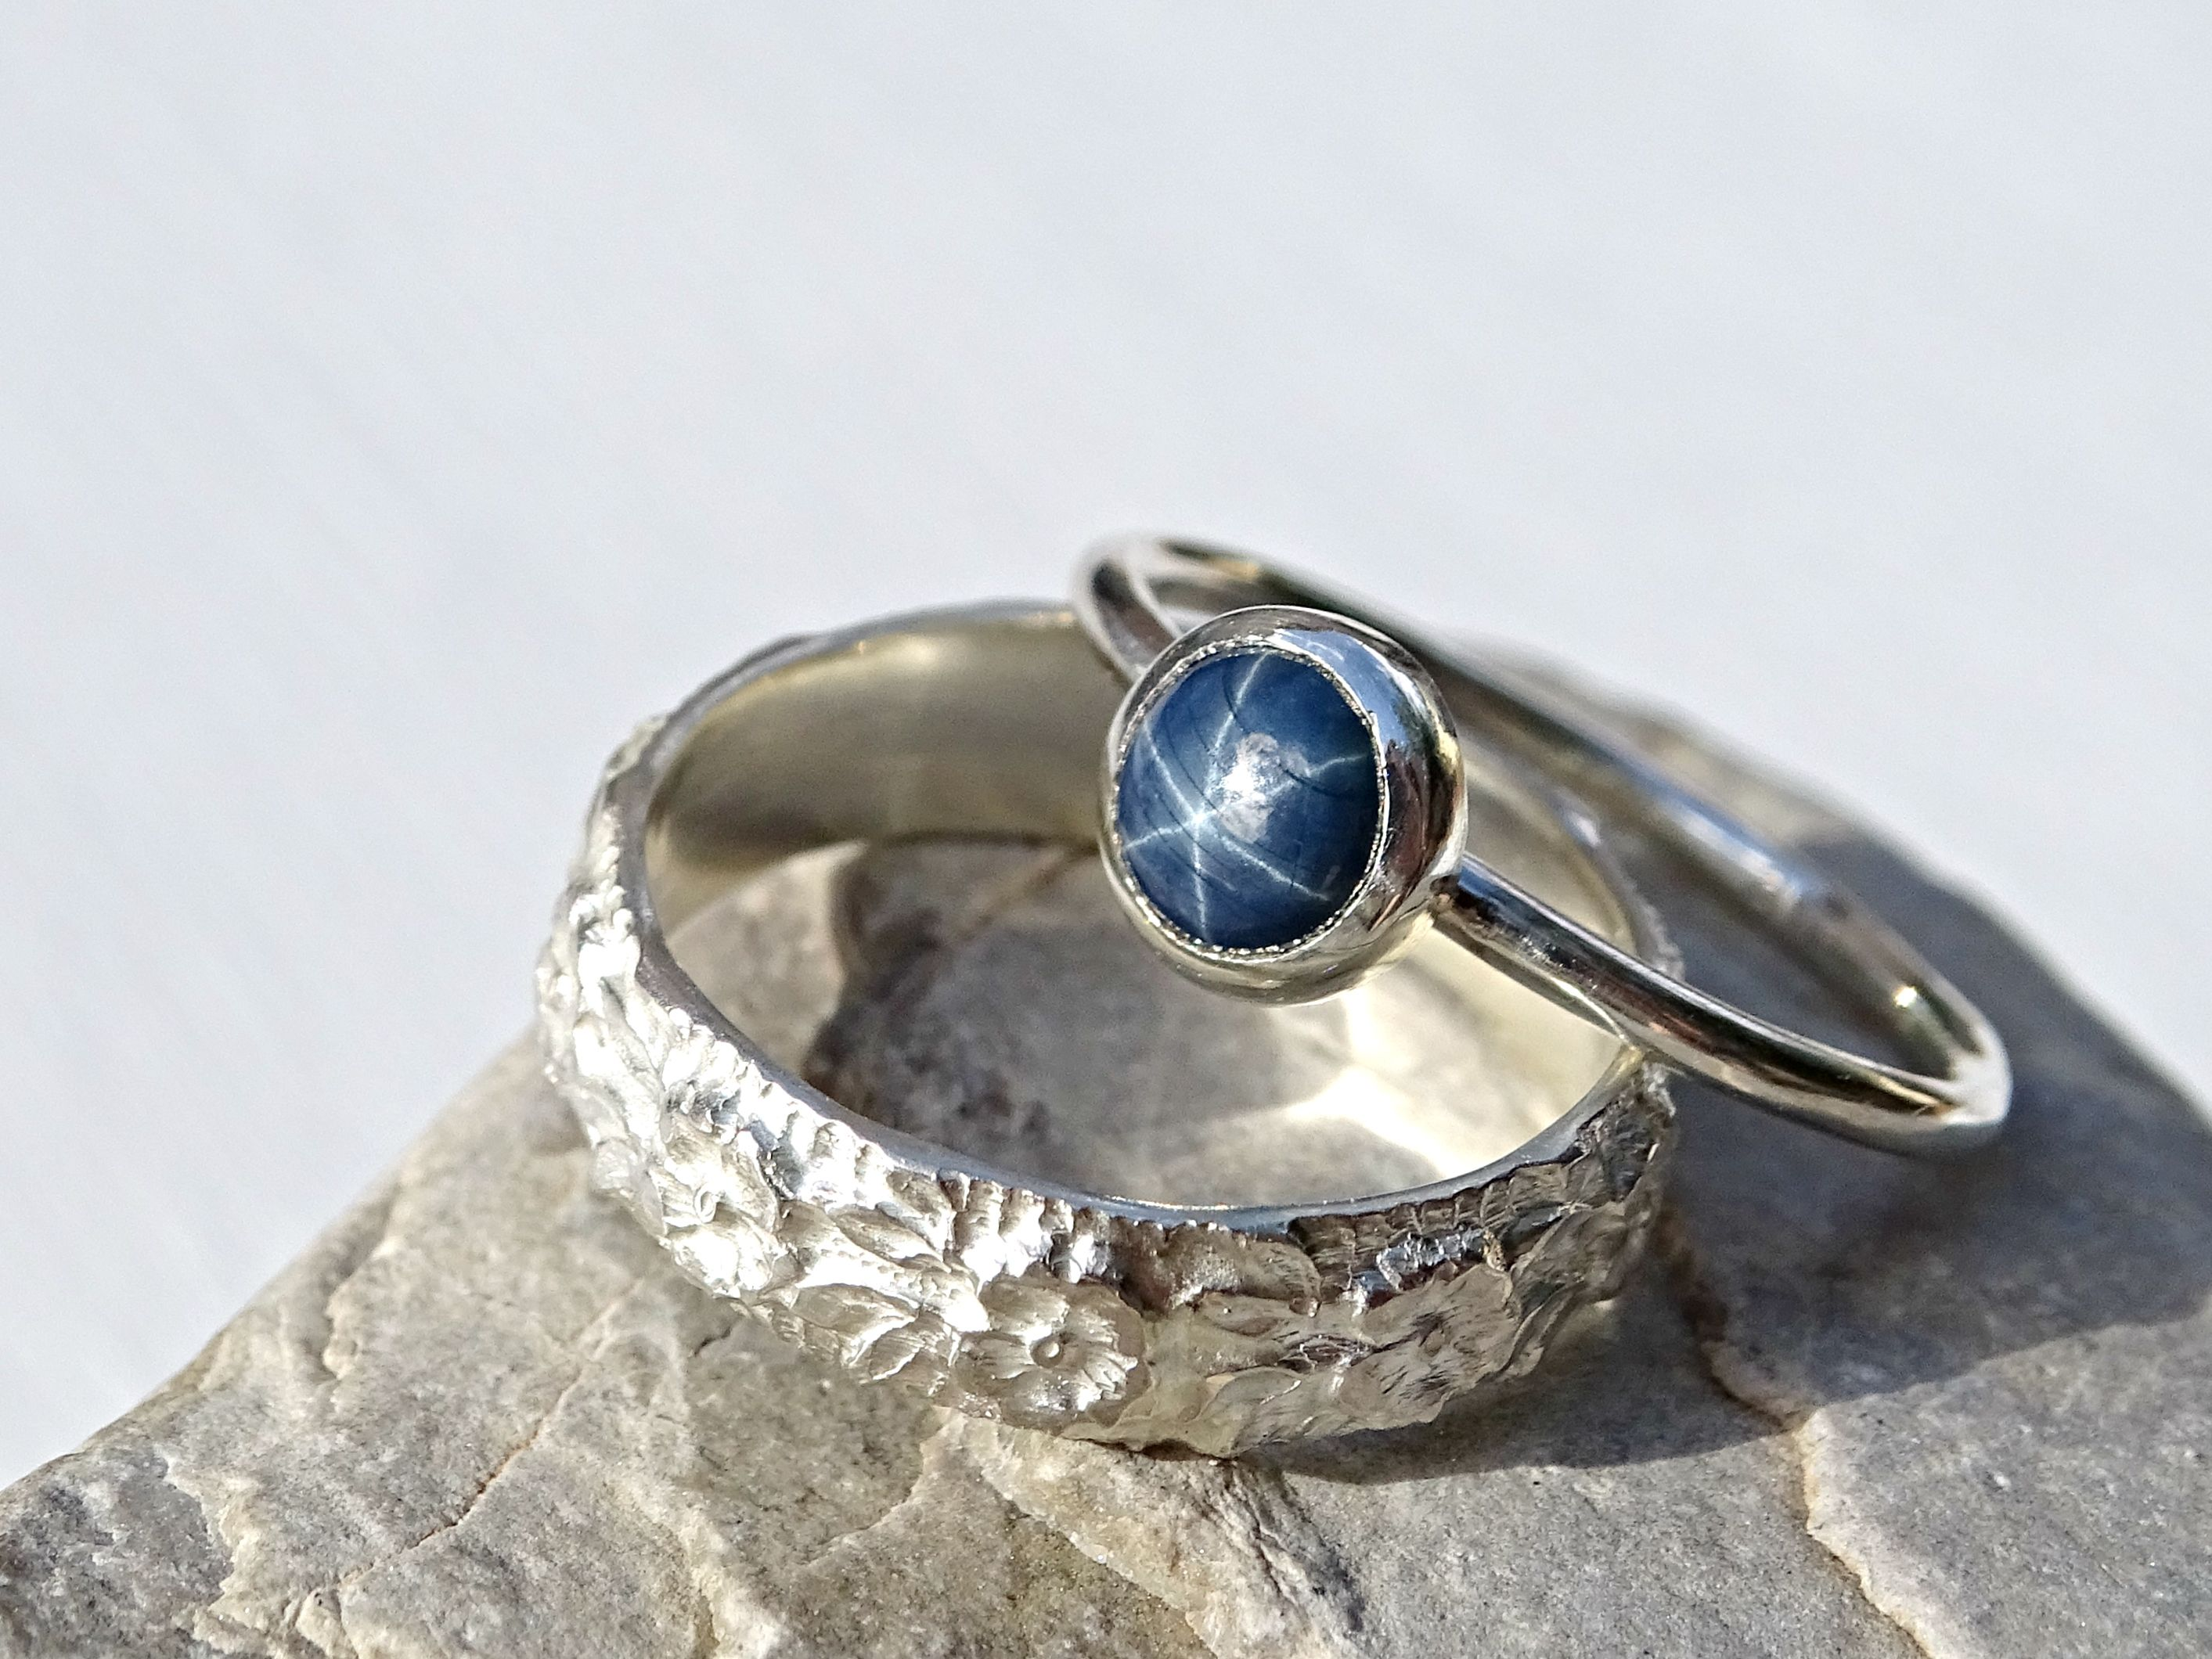 star com by crazyass a ring crazyassjewelry buy clear band and wedding unique engagement order made to jewelry from sapphire custommade custom silver